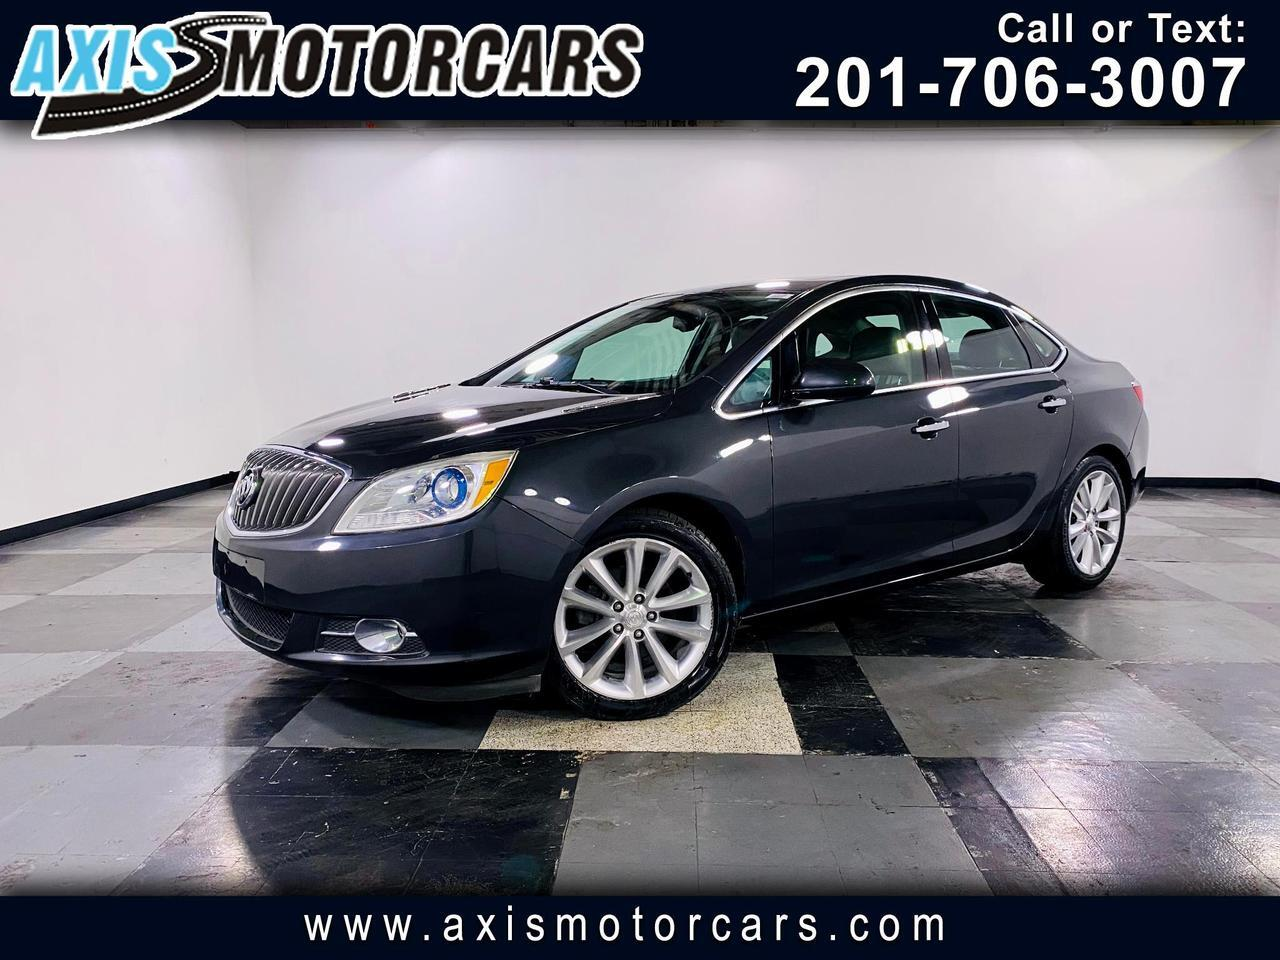 2014 Buick Verano 4dr Sdn w/Backup Camera Sun Roof Jersey City NJ